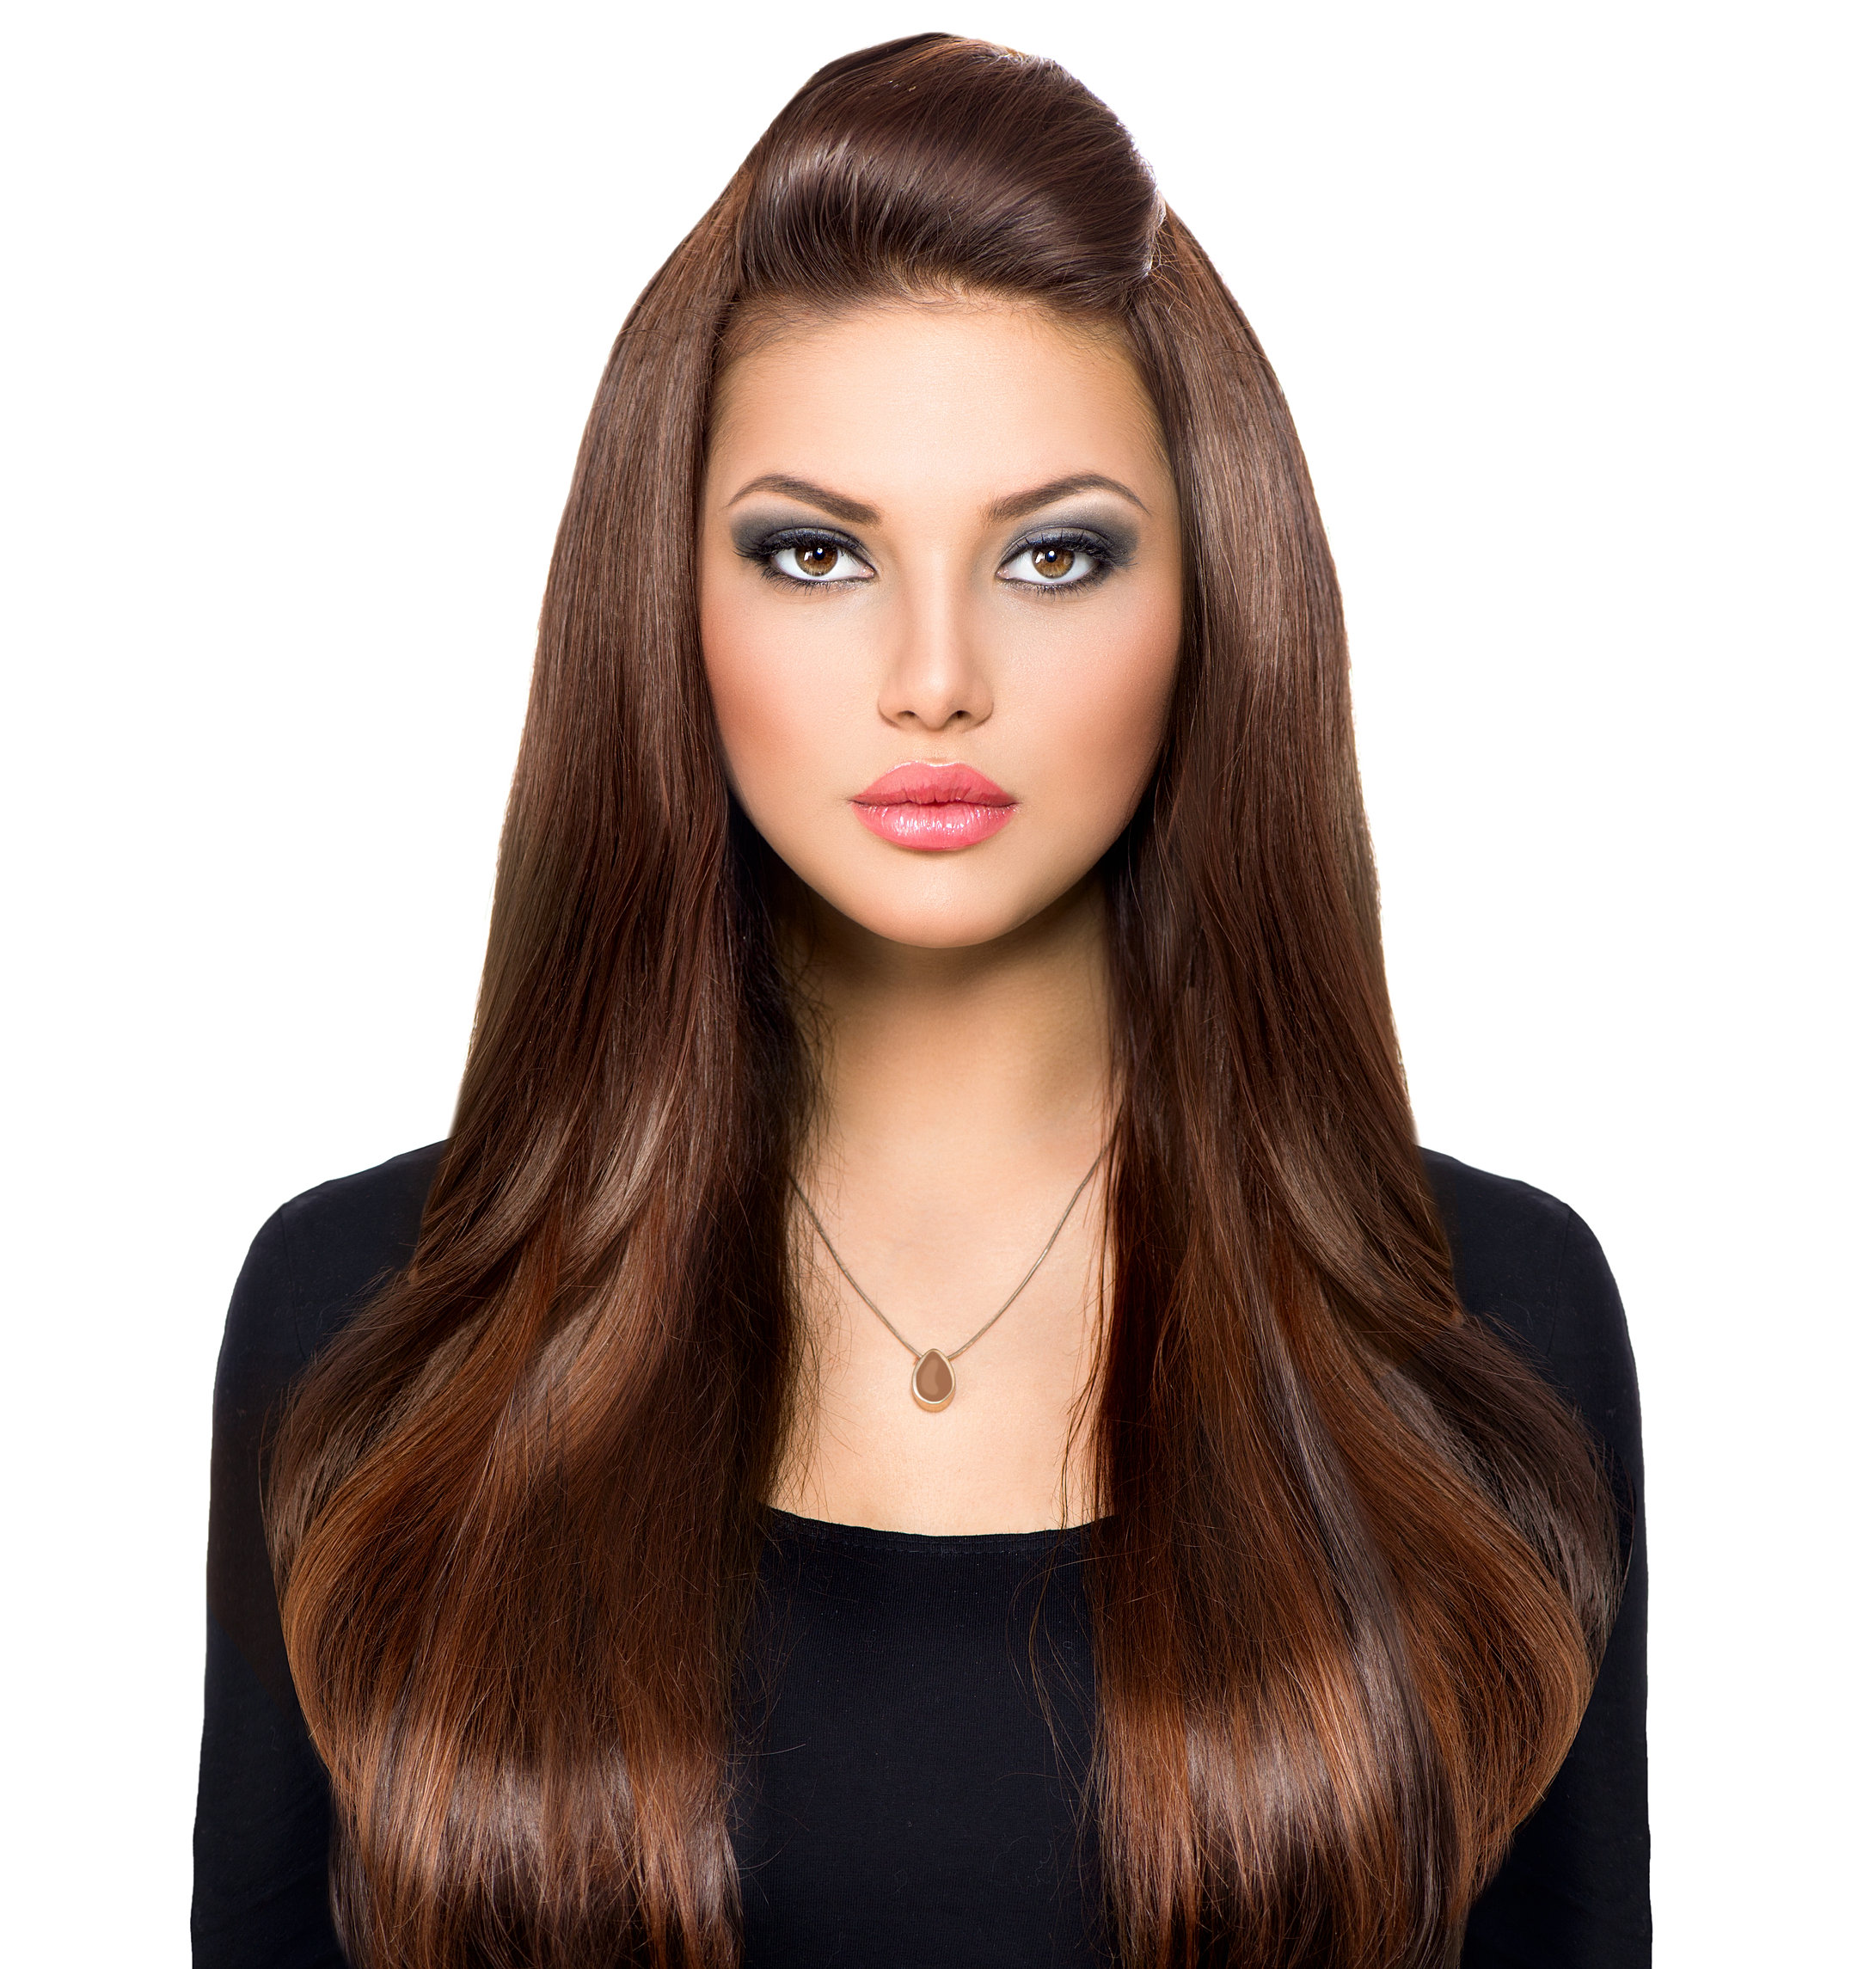 Egyptian Queen Hair and Beauty